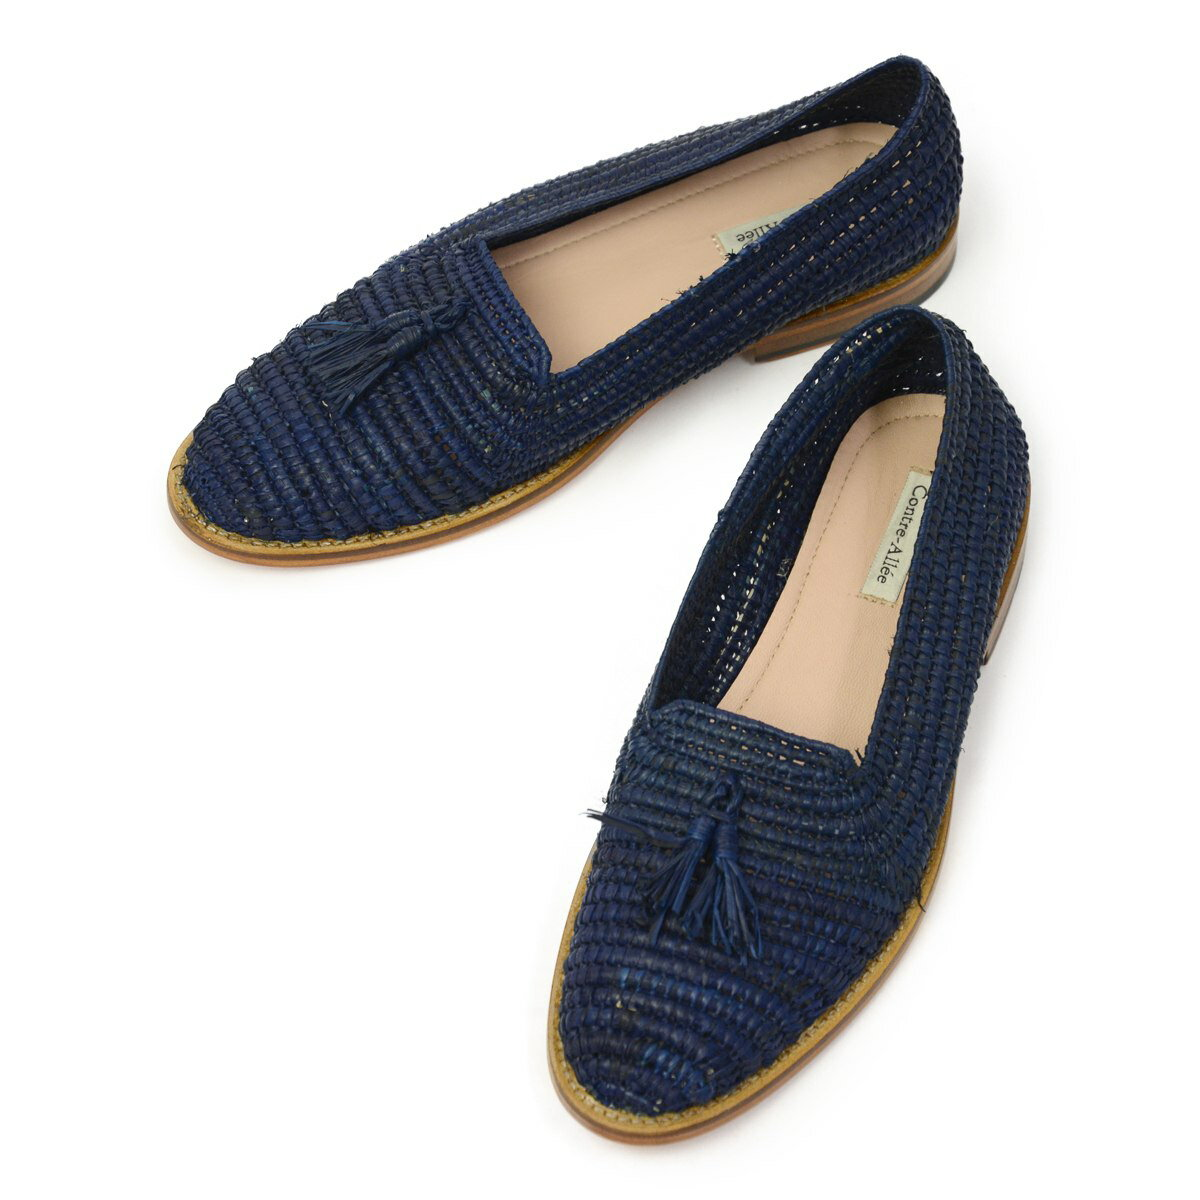 Contre-Allee【コントレアリー】タッセルローファー Souliers GIRONDE Navy ラフィア ネイビー